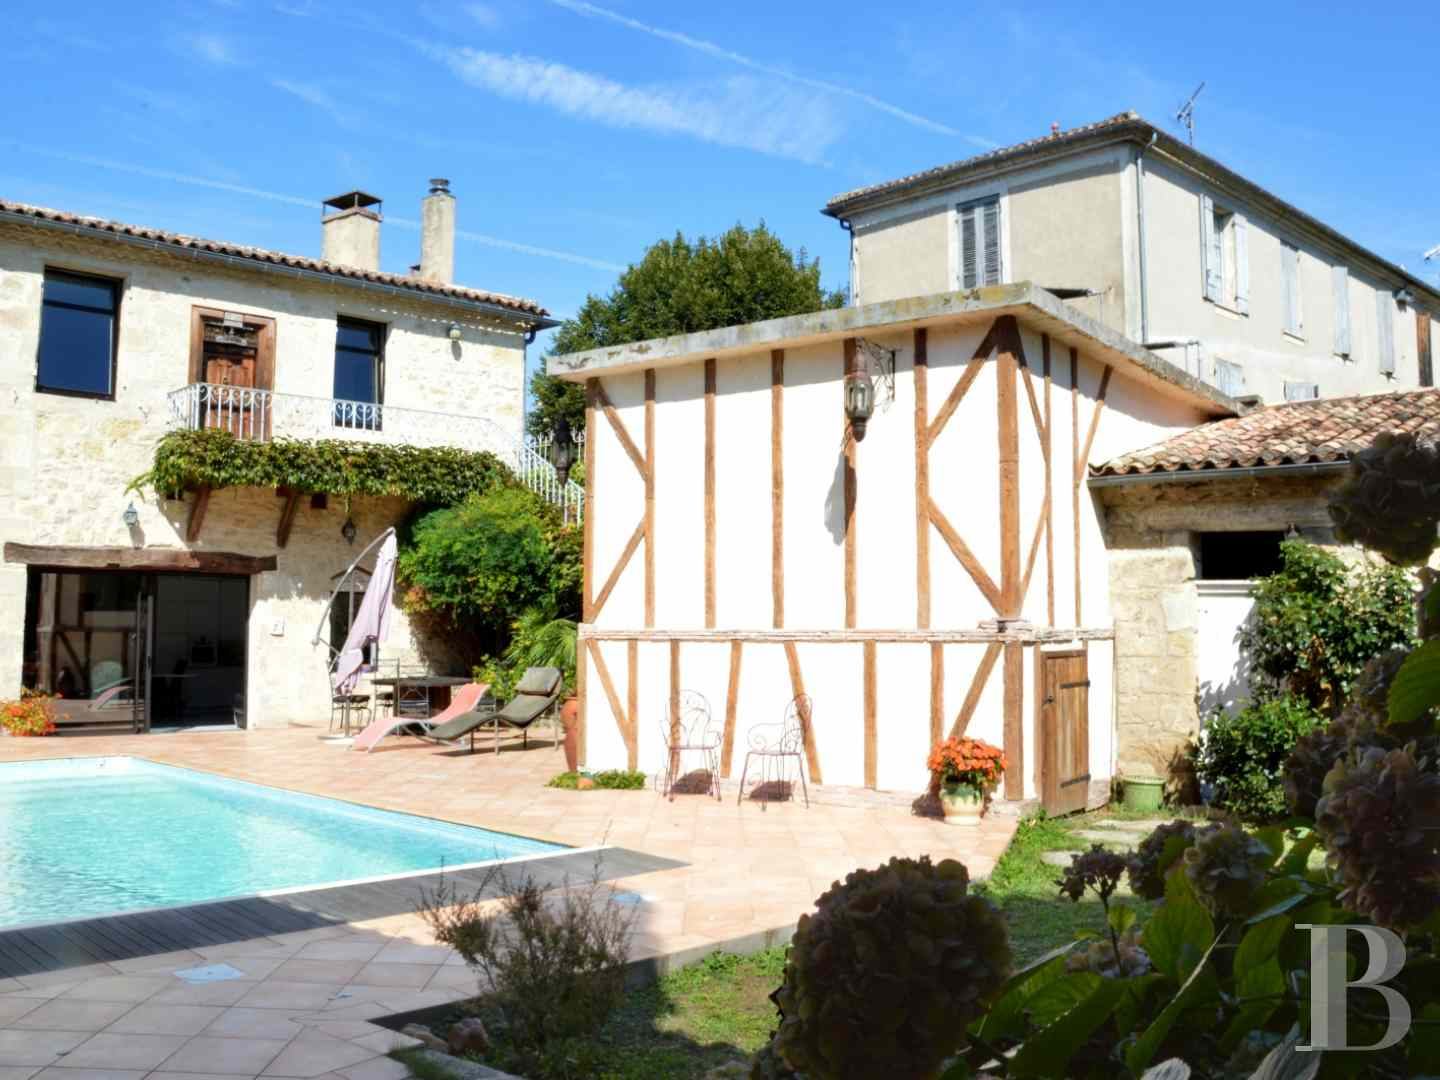 mansion houses for sale France aquitaine bordeaux region - 14 zoom